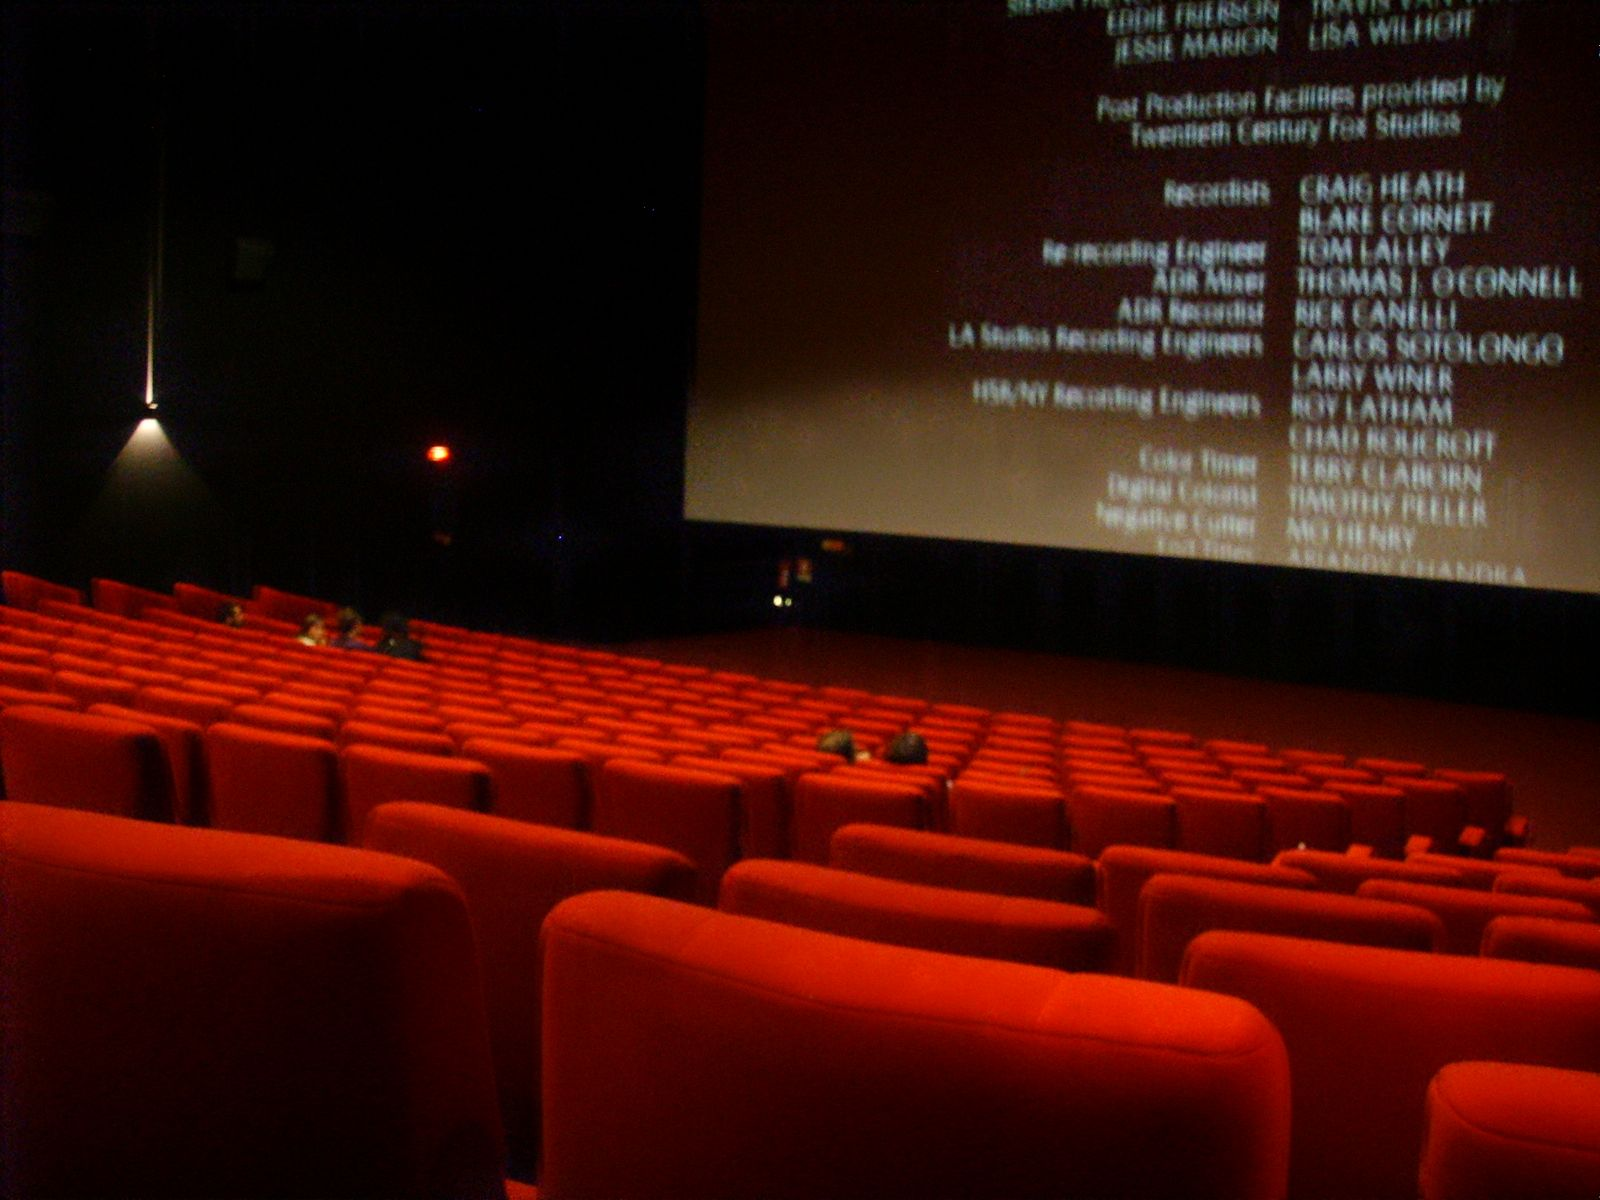 The Book Worm Reviews: Why Care About Movies?   Movies   Pinterest ...